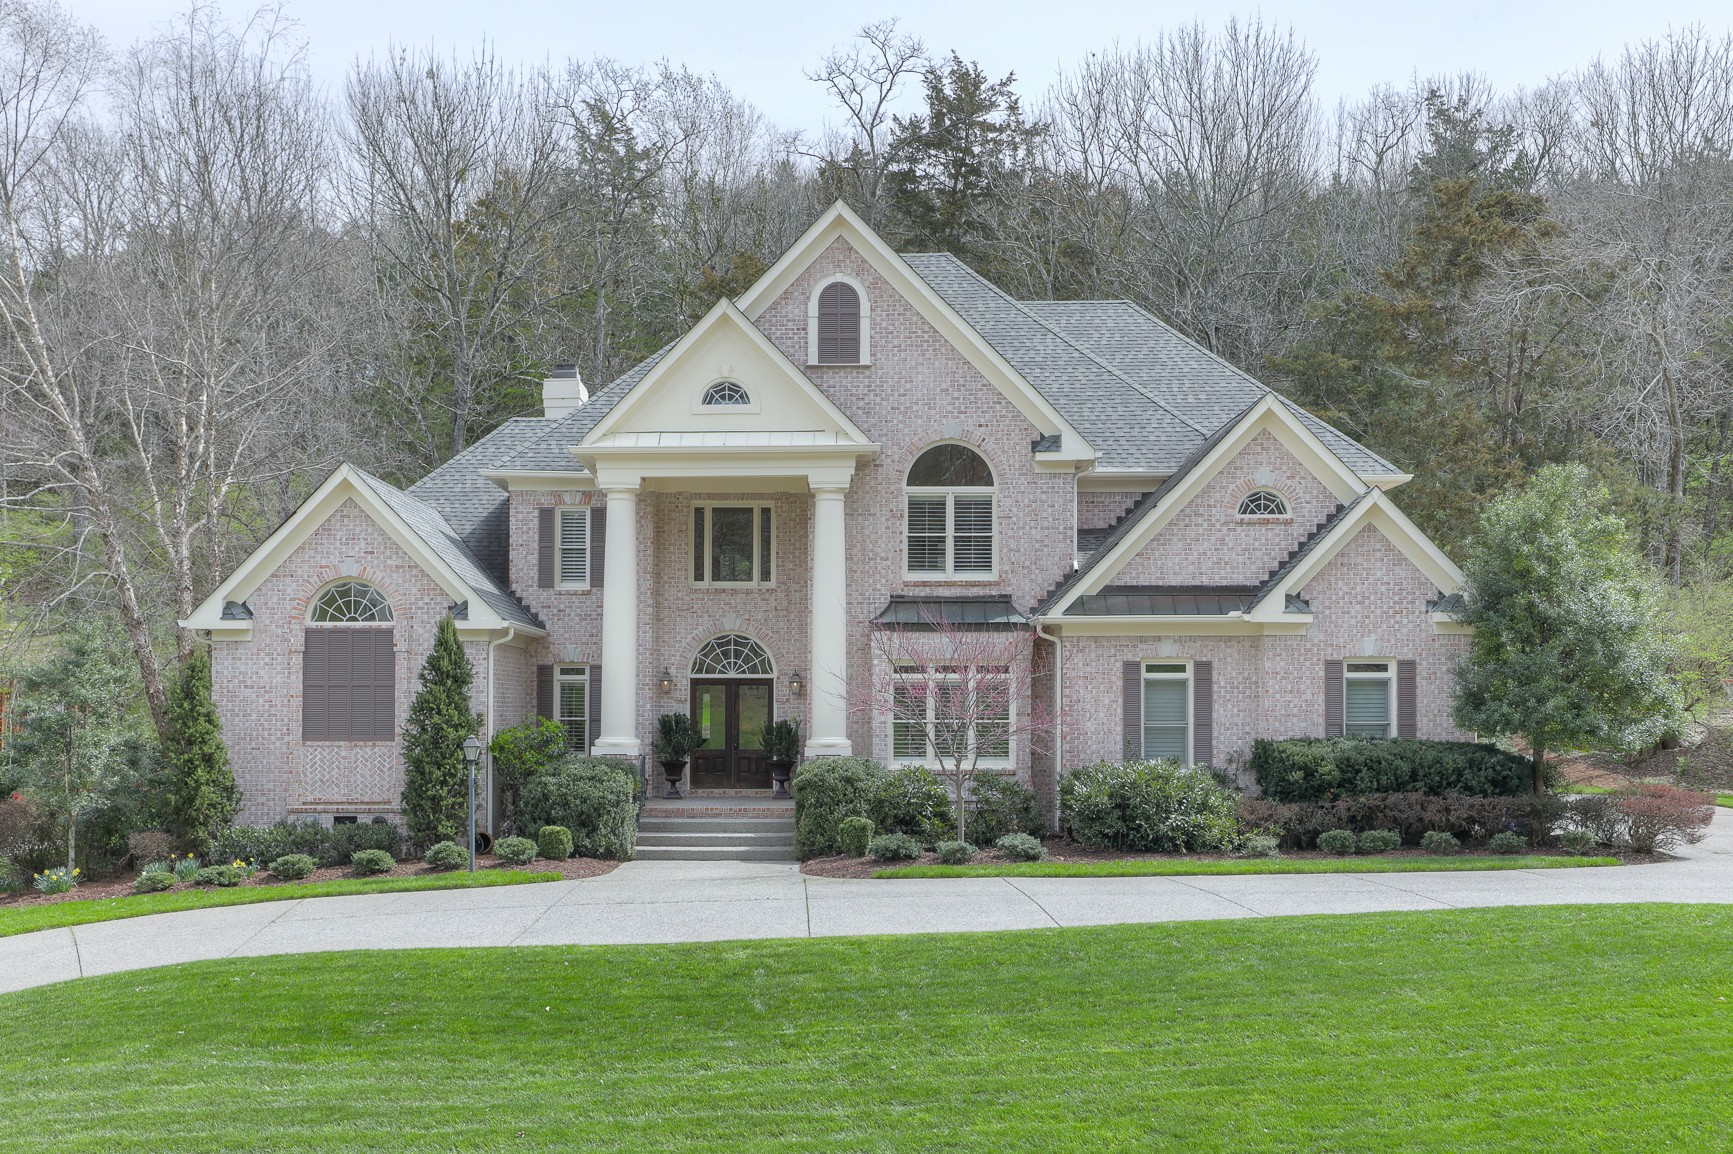 536 Grand Oaks Dr Property Photo - Brentwood, TN real estate listing